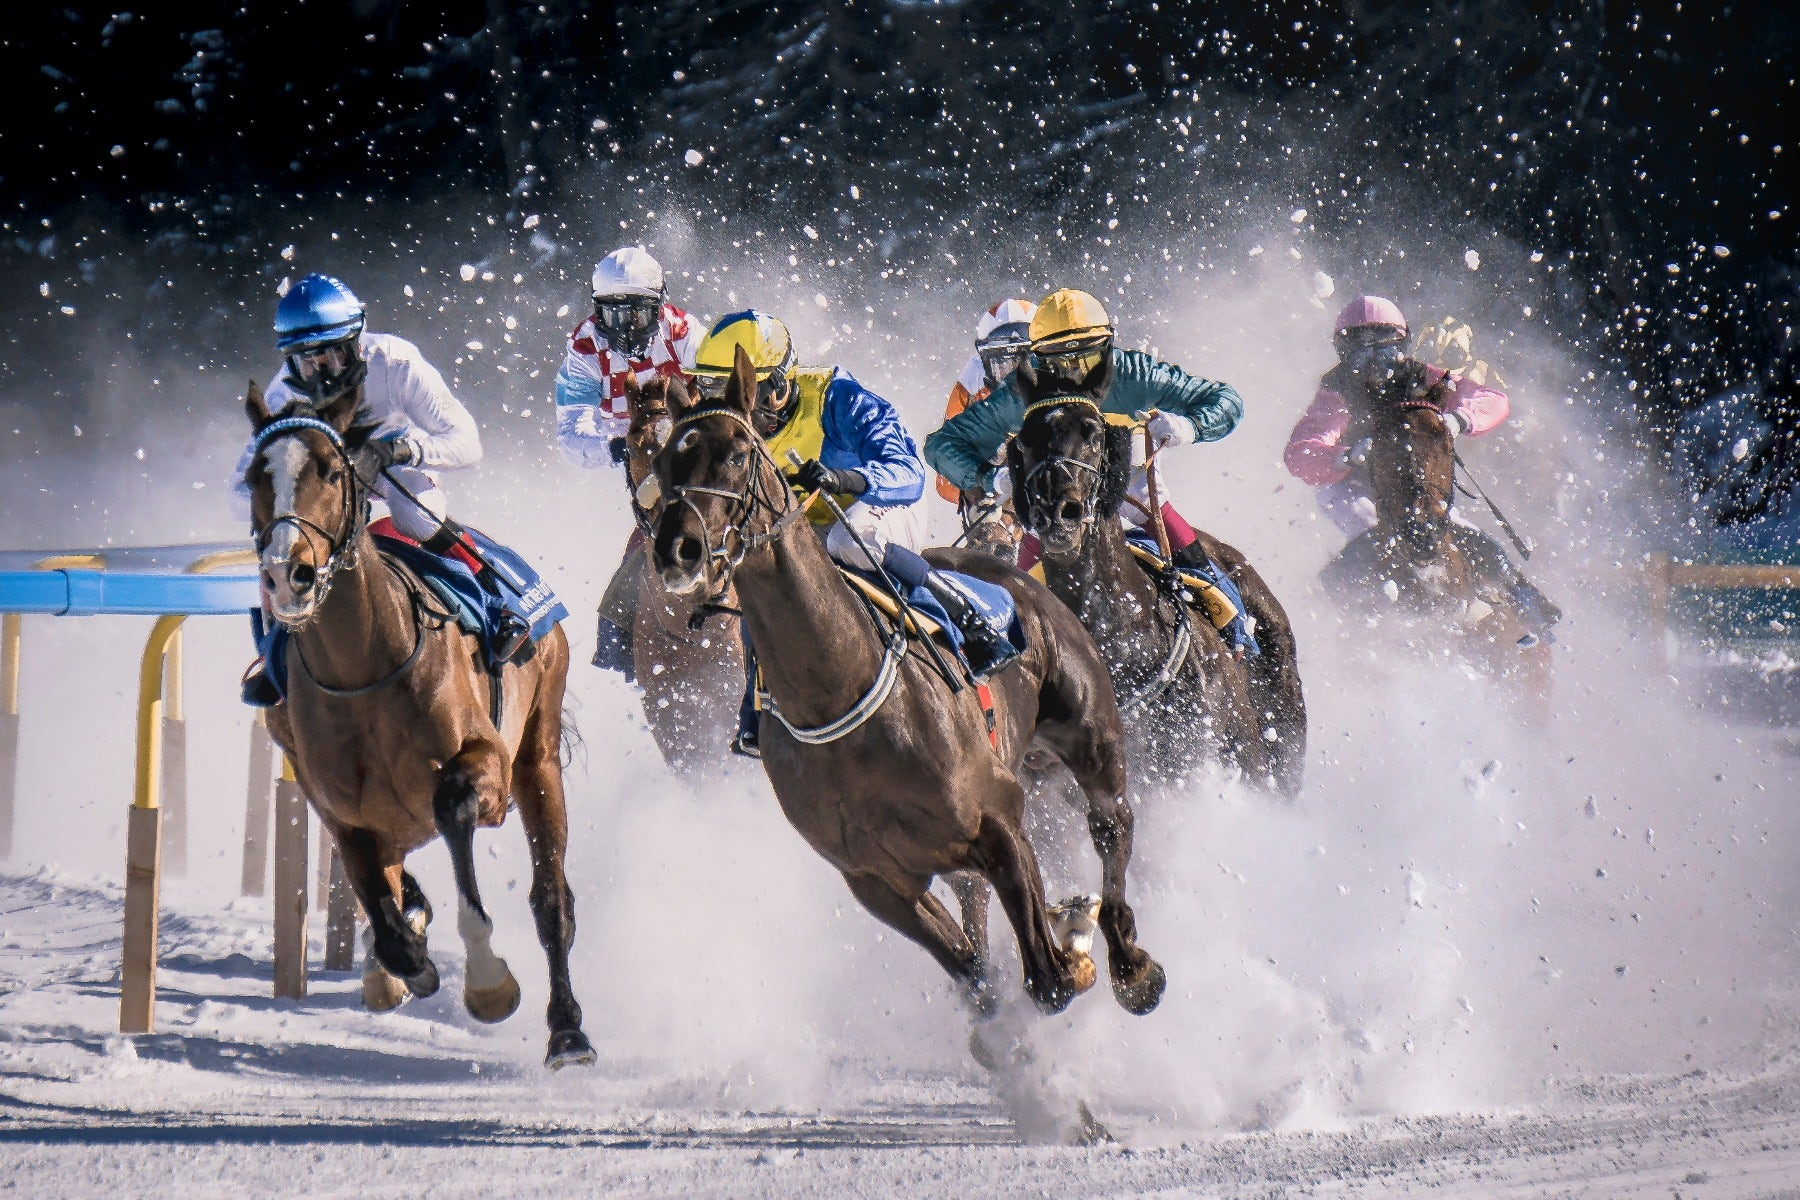 Horse racing with fast shutter speed